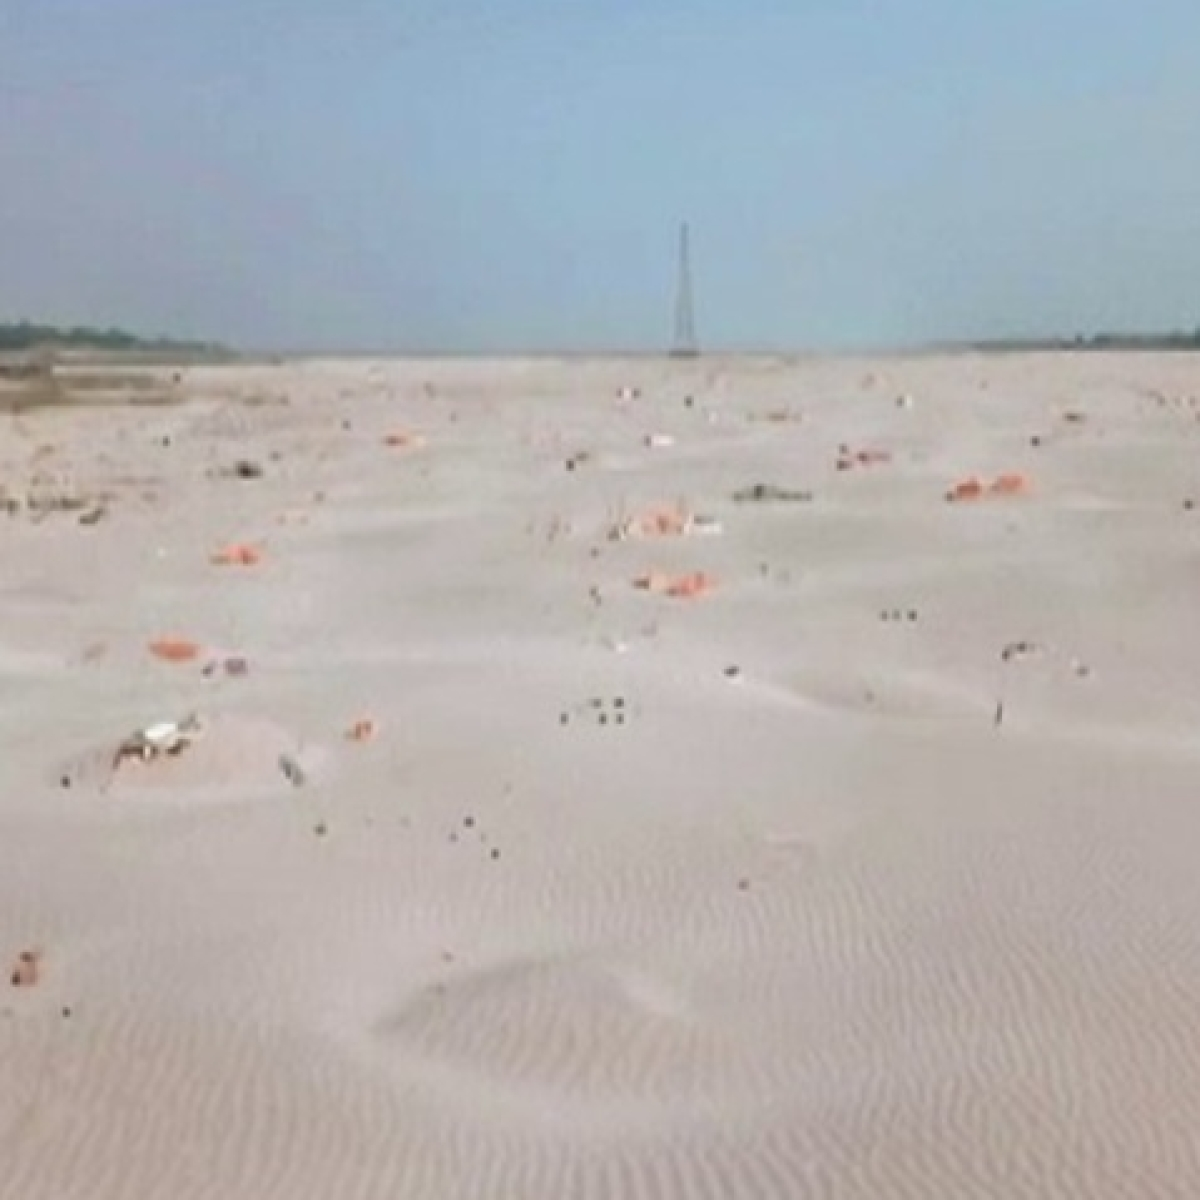 Bodies found buried in sand on banks of Ganga in UP's Prayagraj